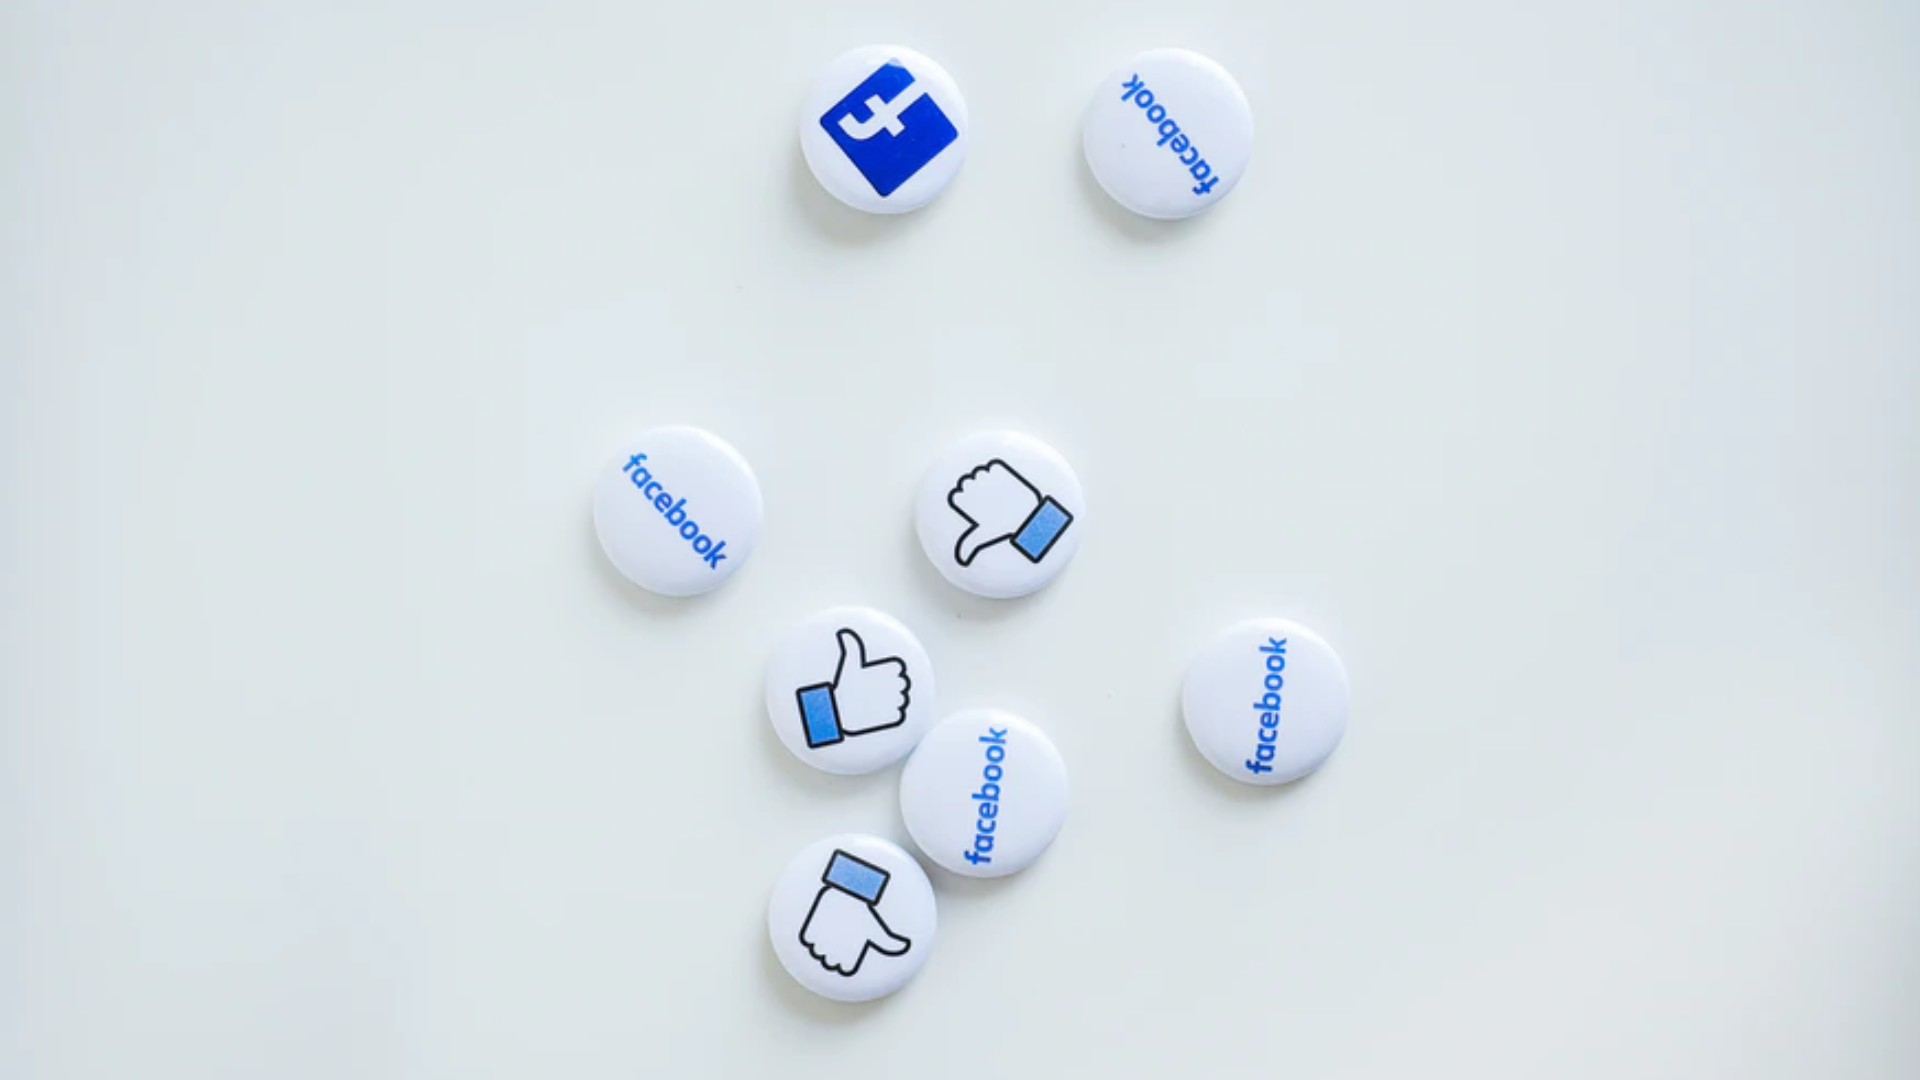 Top 5 tips to improve your Facebook engagement strategy